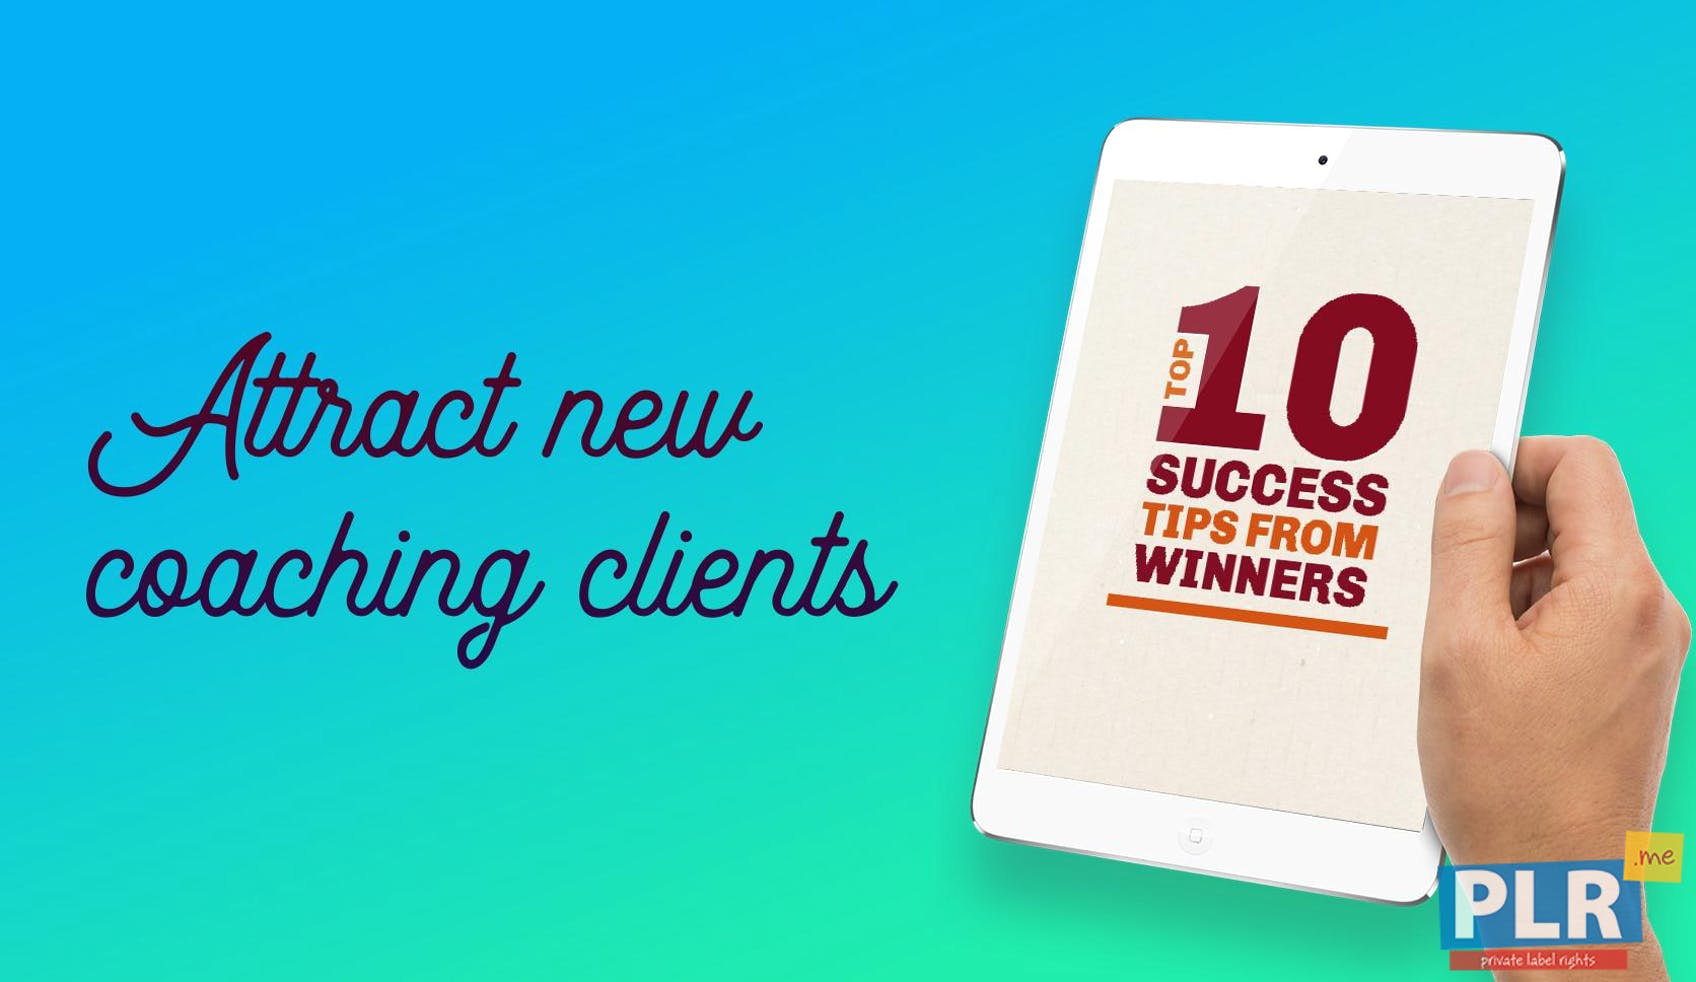 Top 10 Success Tips From Winners